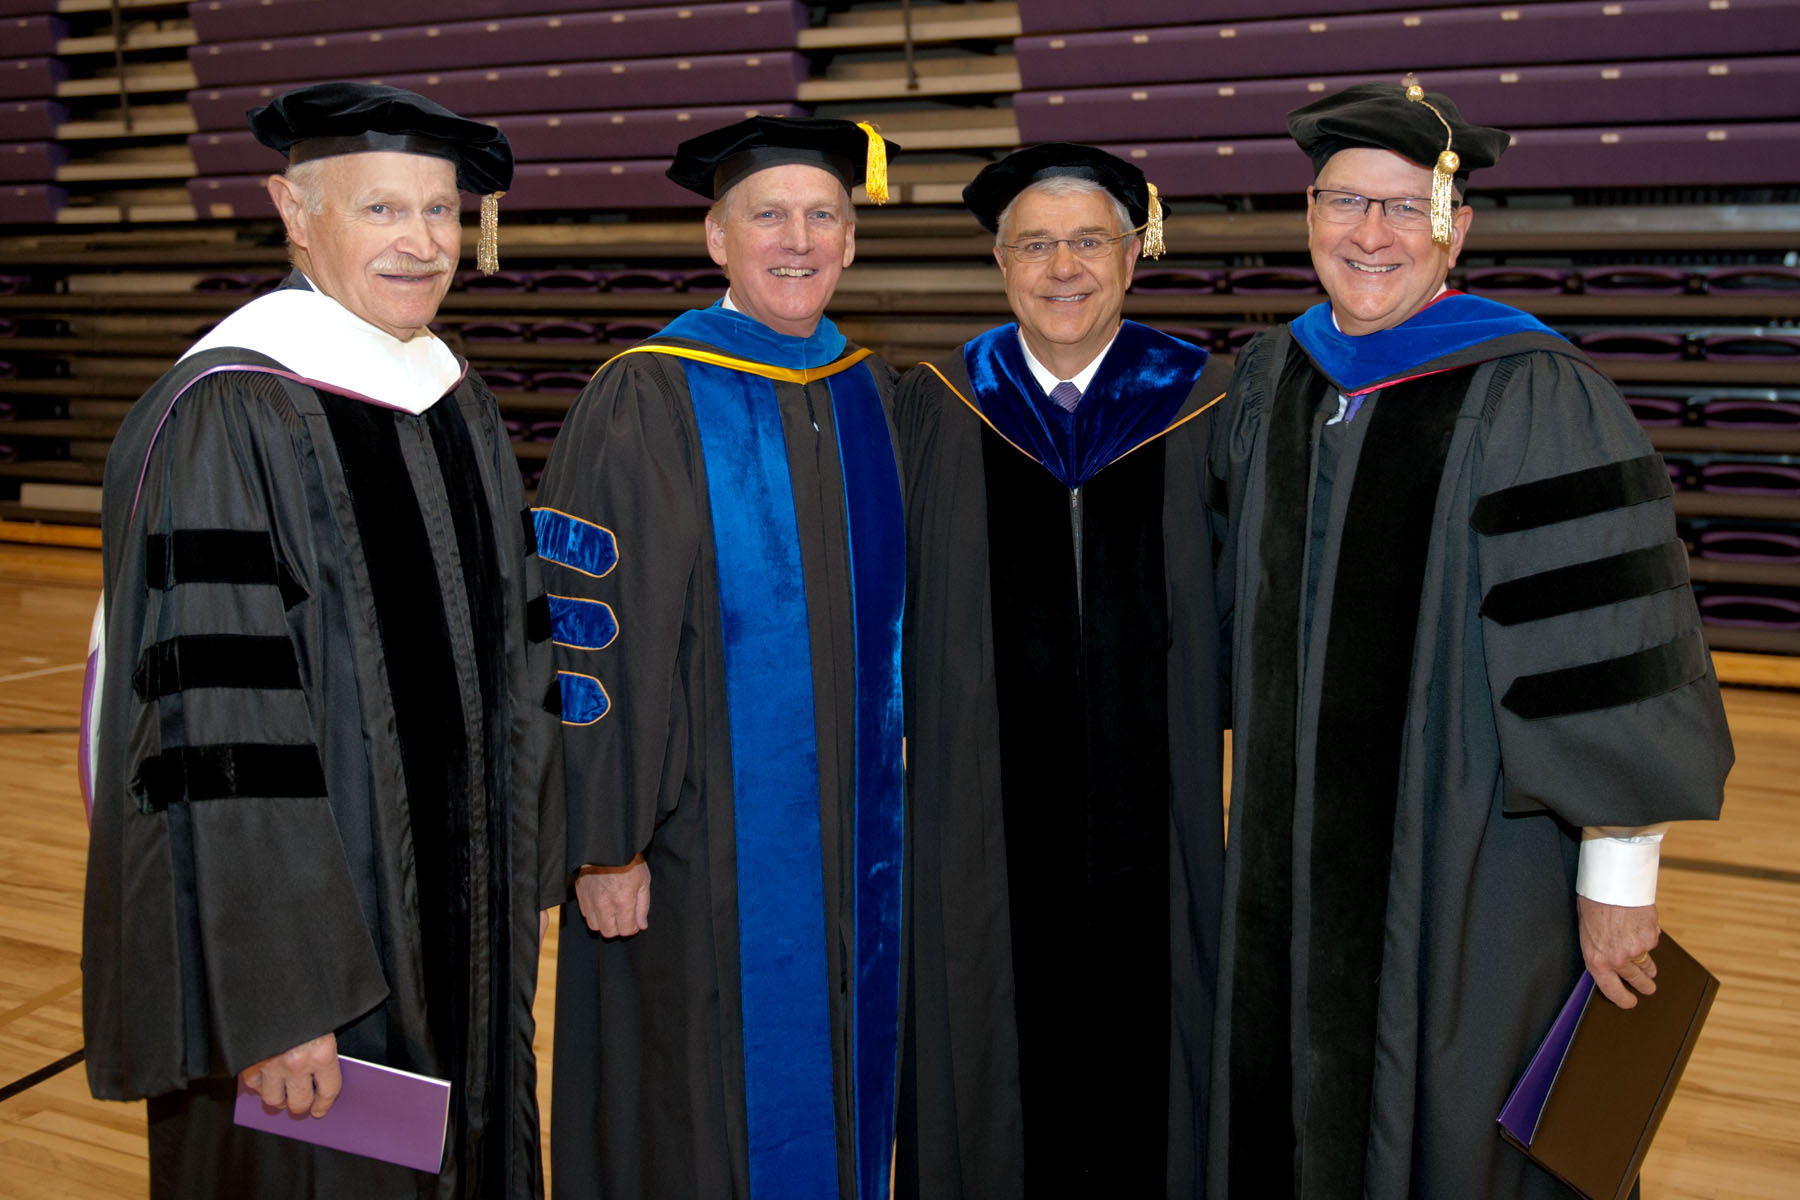 University of Mount Union President Dick Merriman with former presidents Dr. Harold Kolenbrander, Dr. Jack Ewing, and Dr. Richard Giese